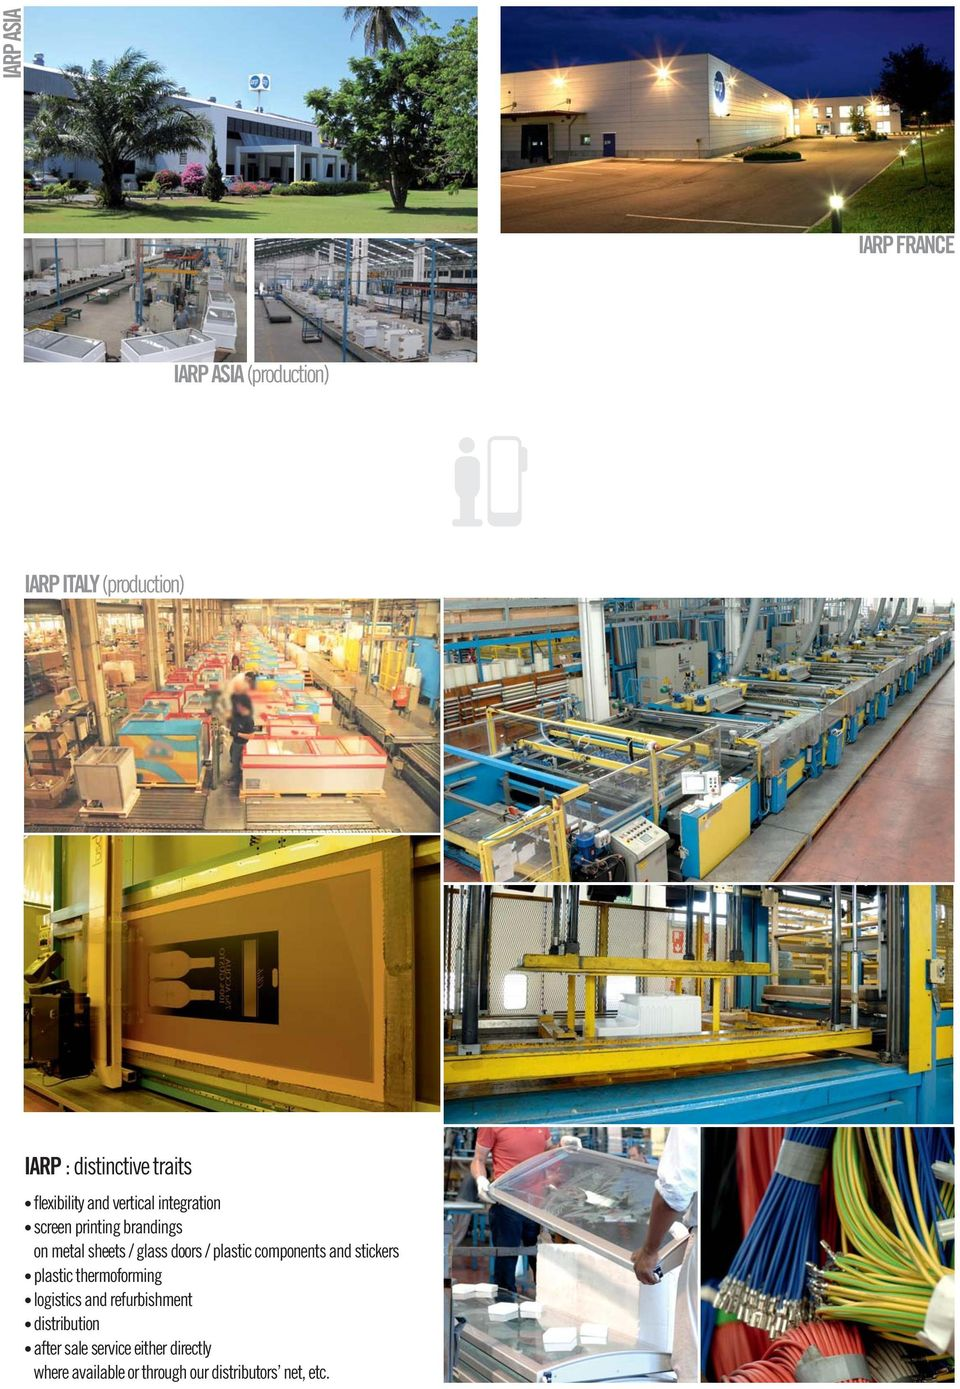 glass doors / plastic components and stickers plastic thermoforming logistics and